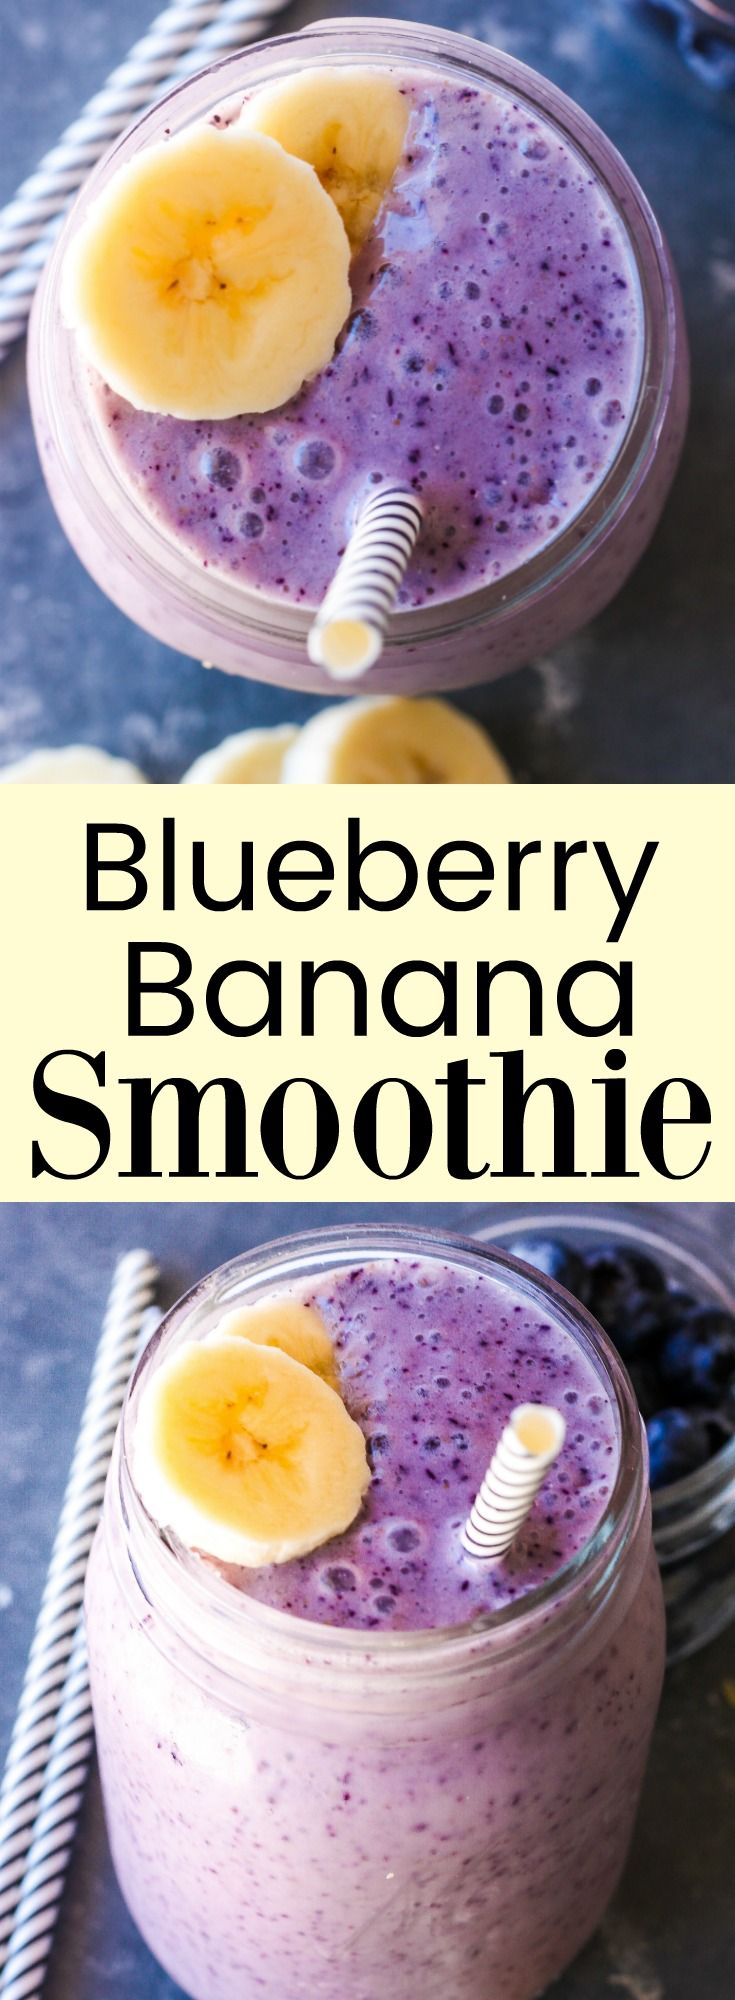 Blueberry Banana Smoothie// Kathryn's Kitchen Blog